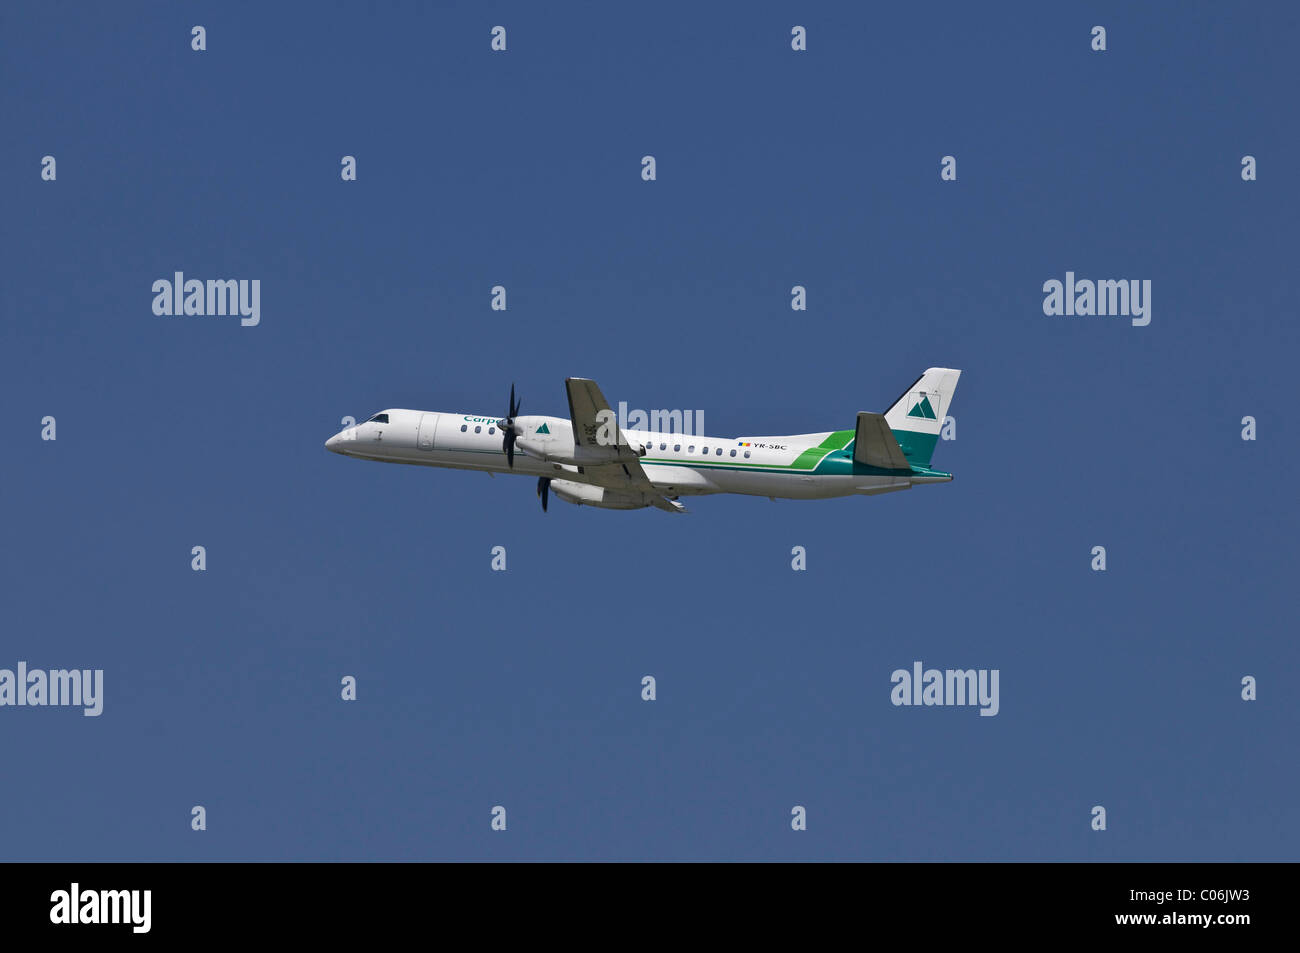 Commercial aircraft from Carpatair, a Romanian airline, climbing - Stock Image